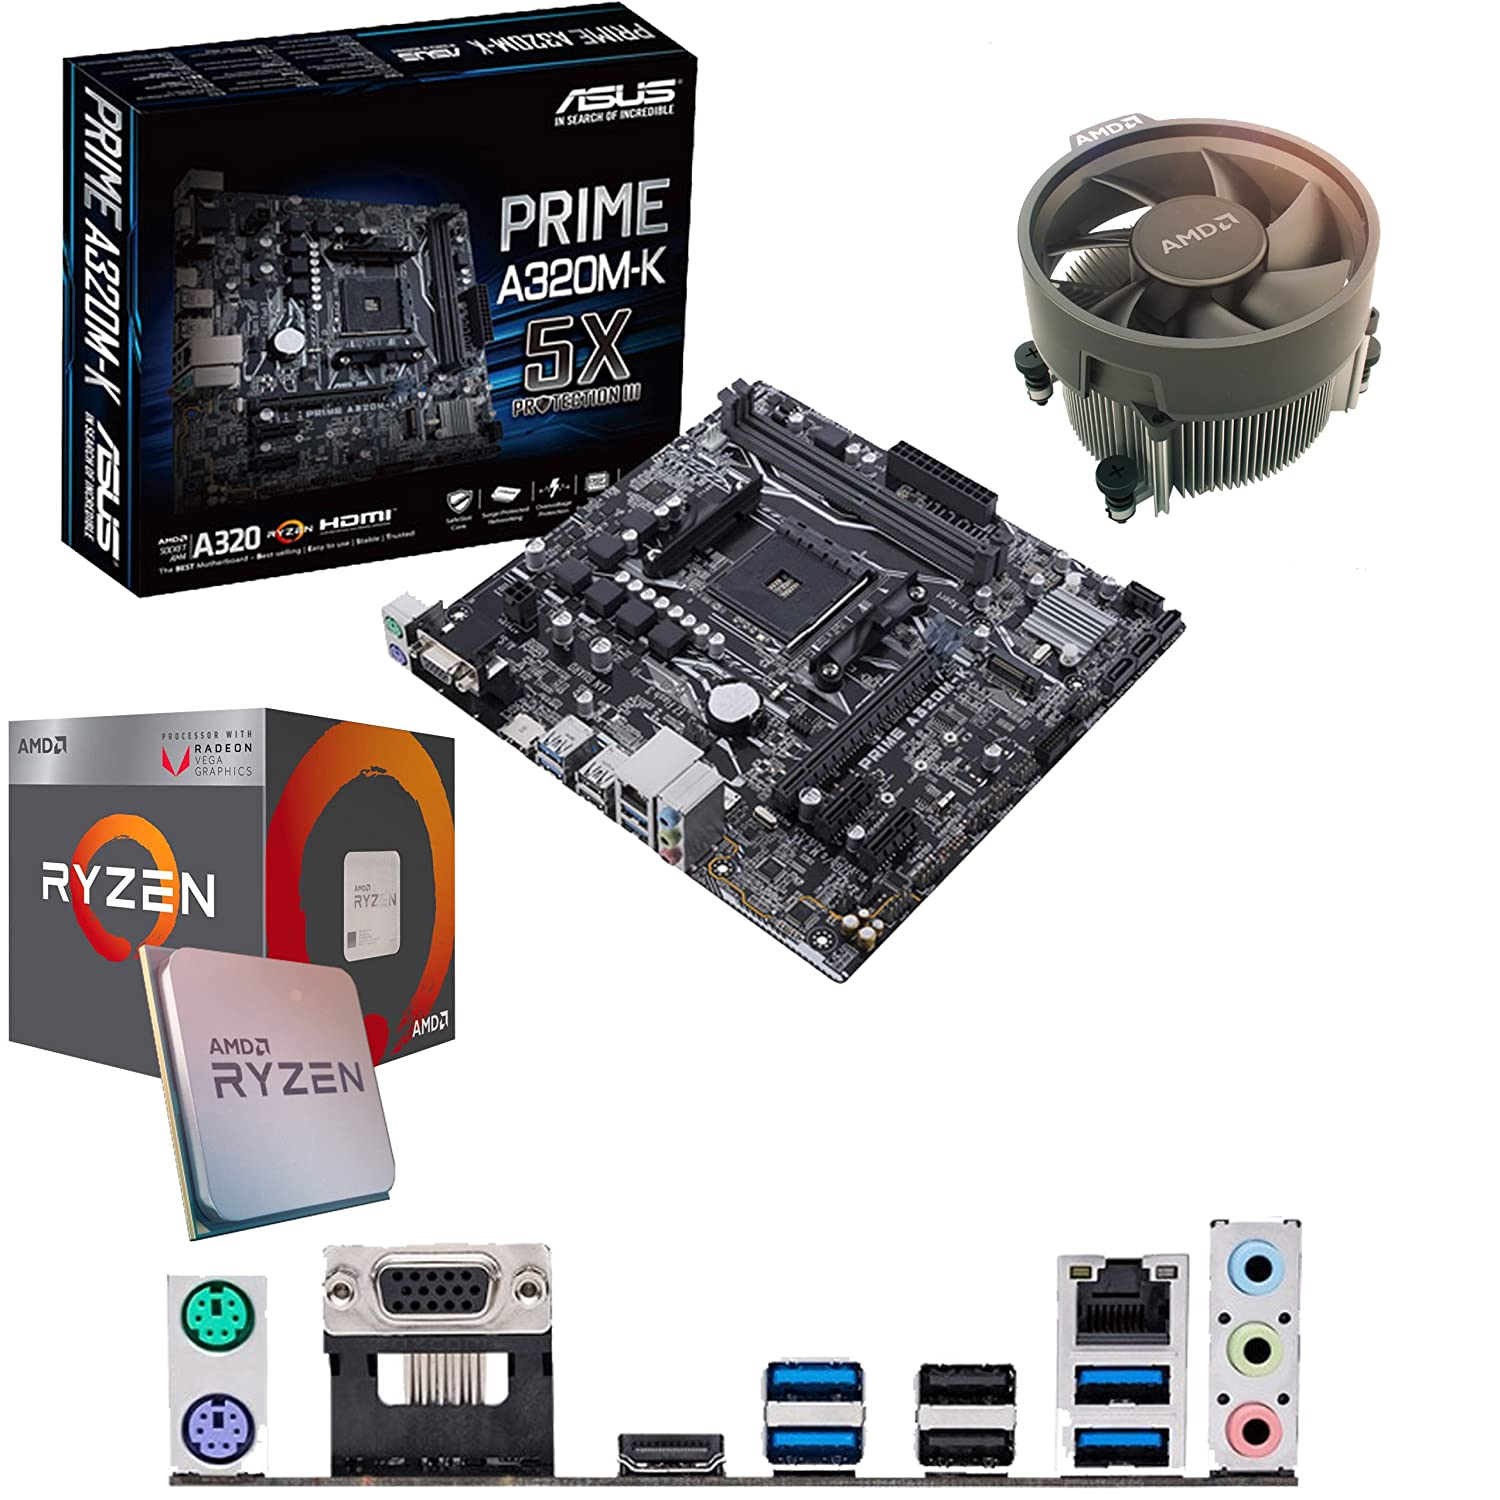 Components4All AMD Ryzen 3 2200G 3 5Ghz (Turbo 3 7Ghz) Quad Core CPU, ASUS  Prime A320M-K Motherboard & 8GB 2133Mhz Crucial DDR4 RAM Pre-Built Bundle